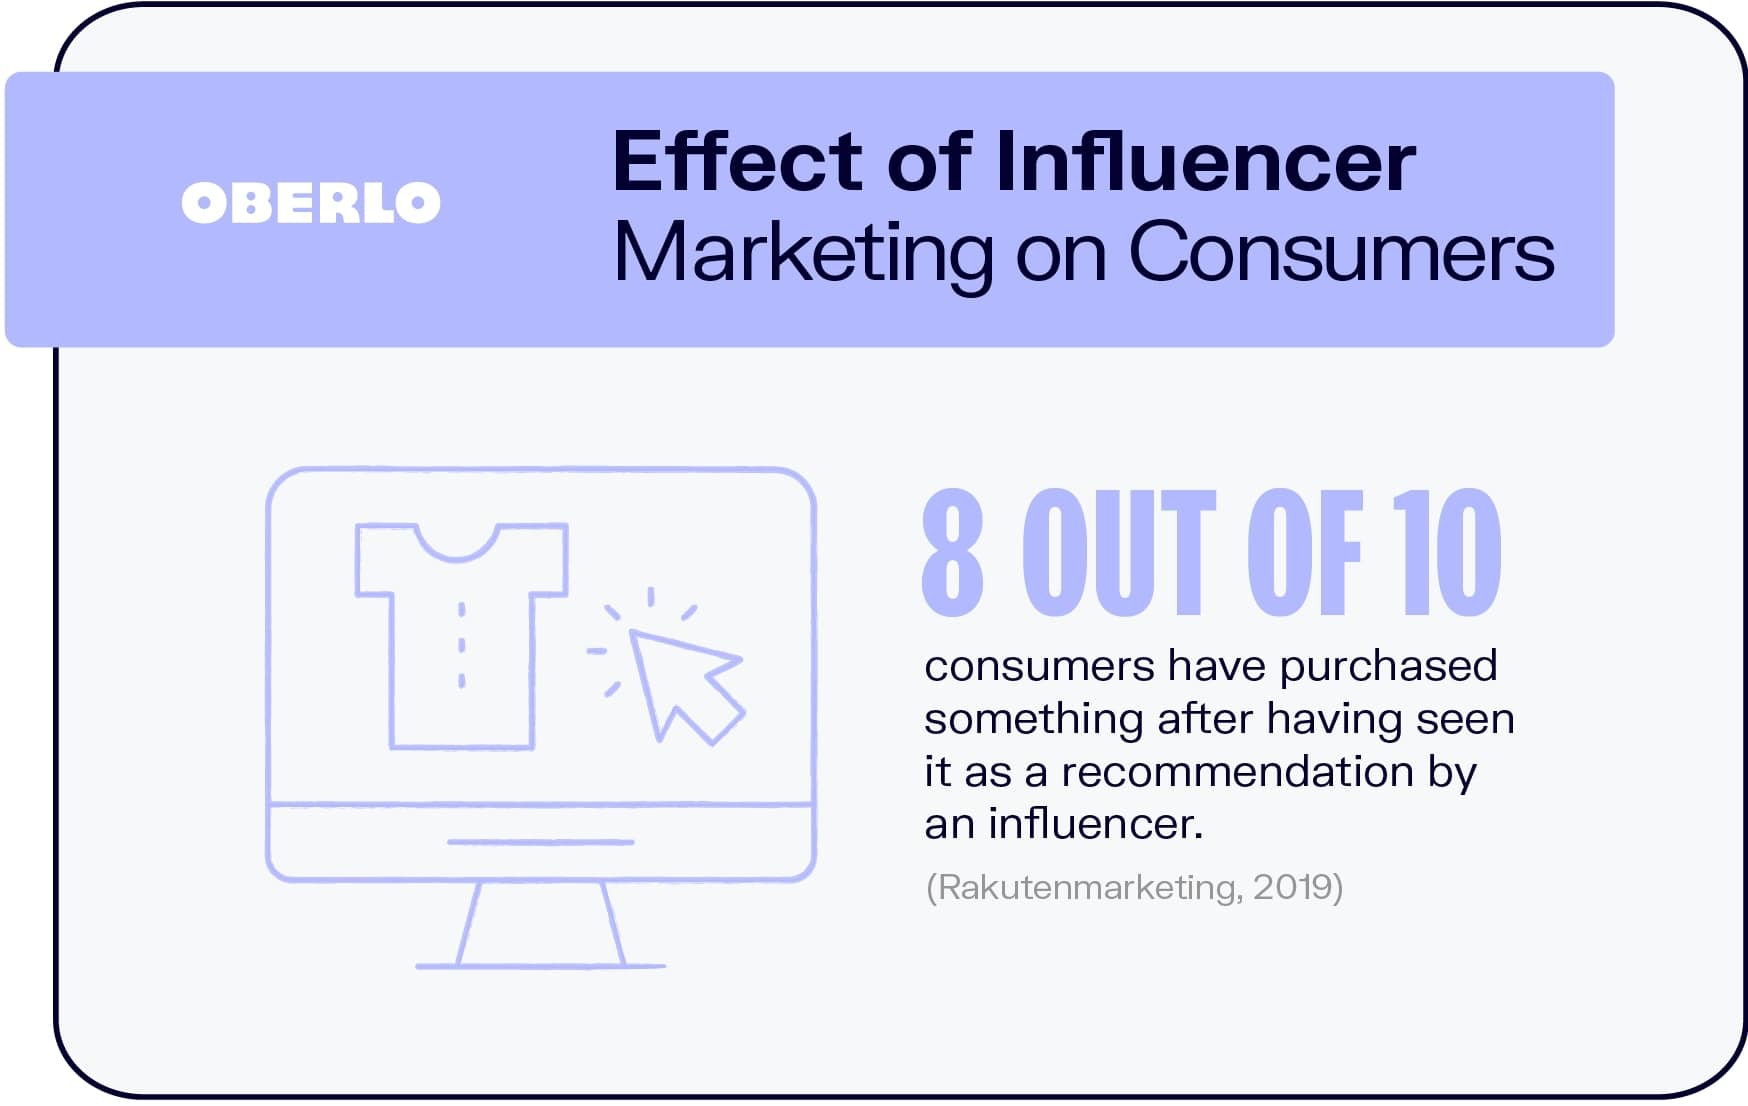 Effect of Influencer Marketing on Consumers